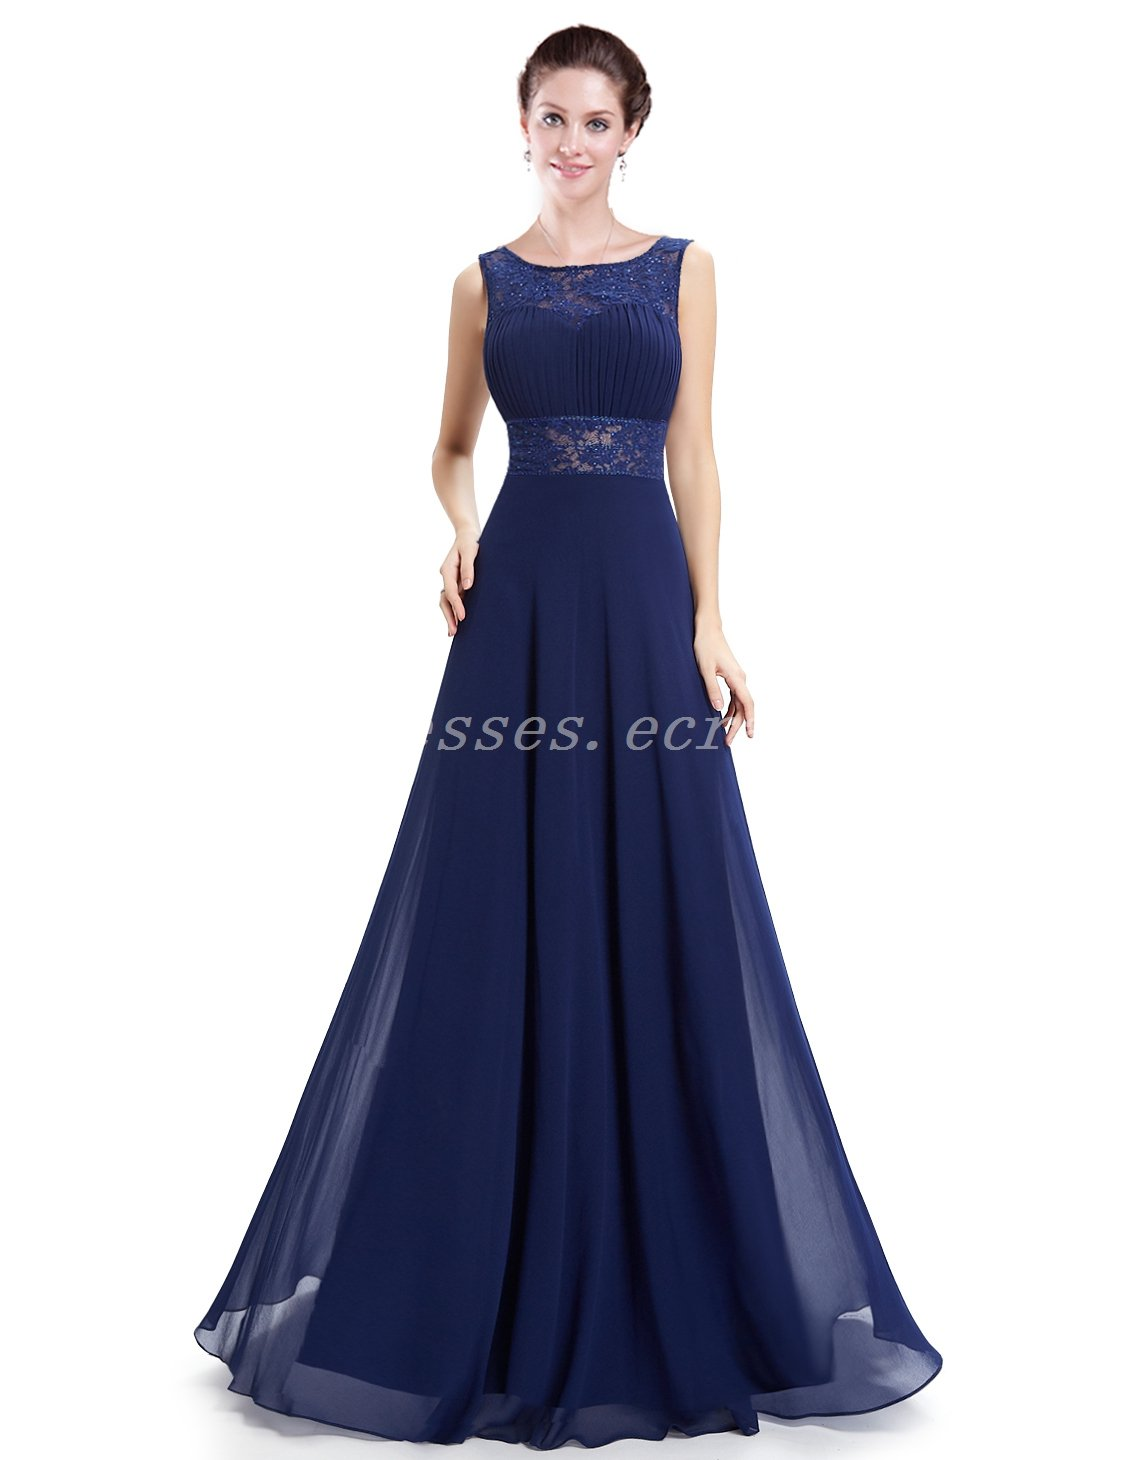 Charming Backless A-line Navy Blue Formal Evening Gowns